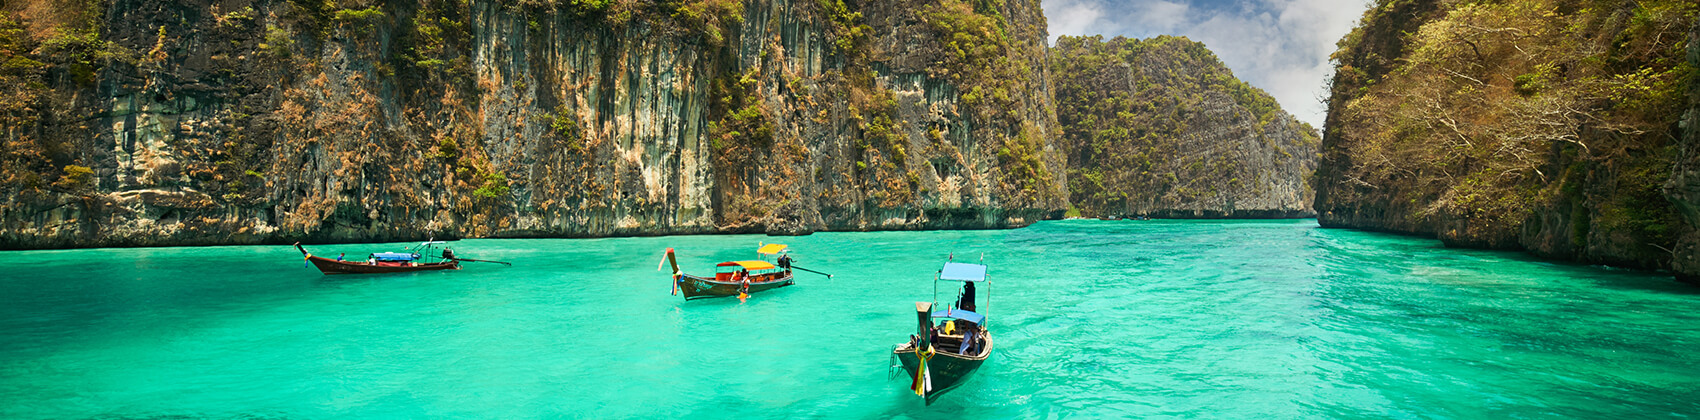 Travel Activities: Thailand